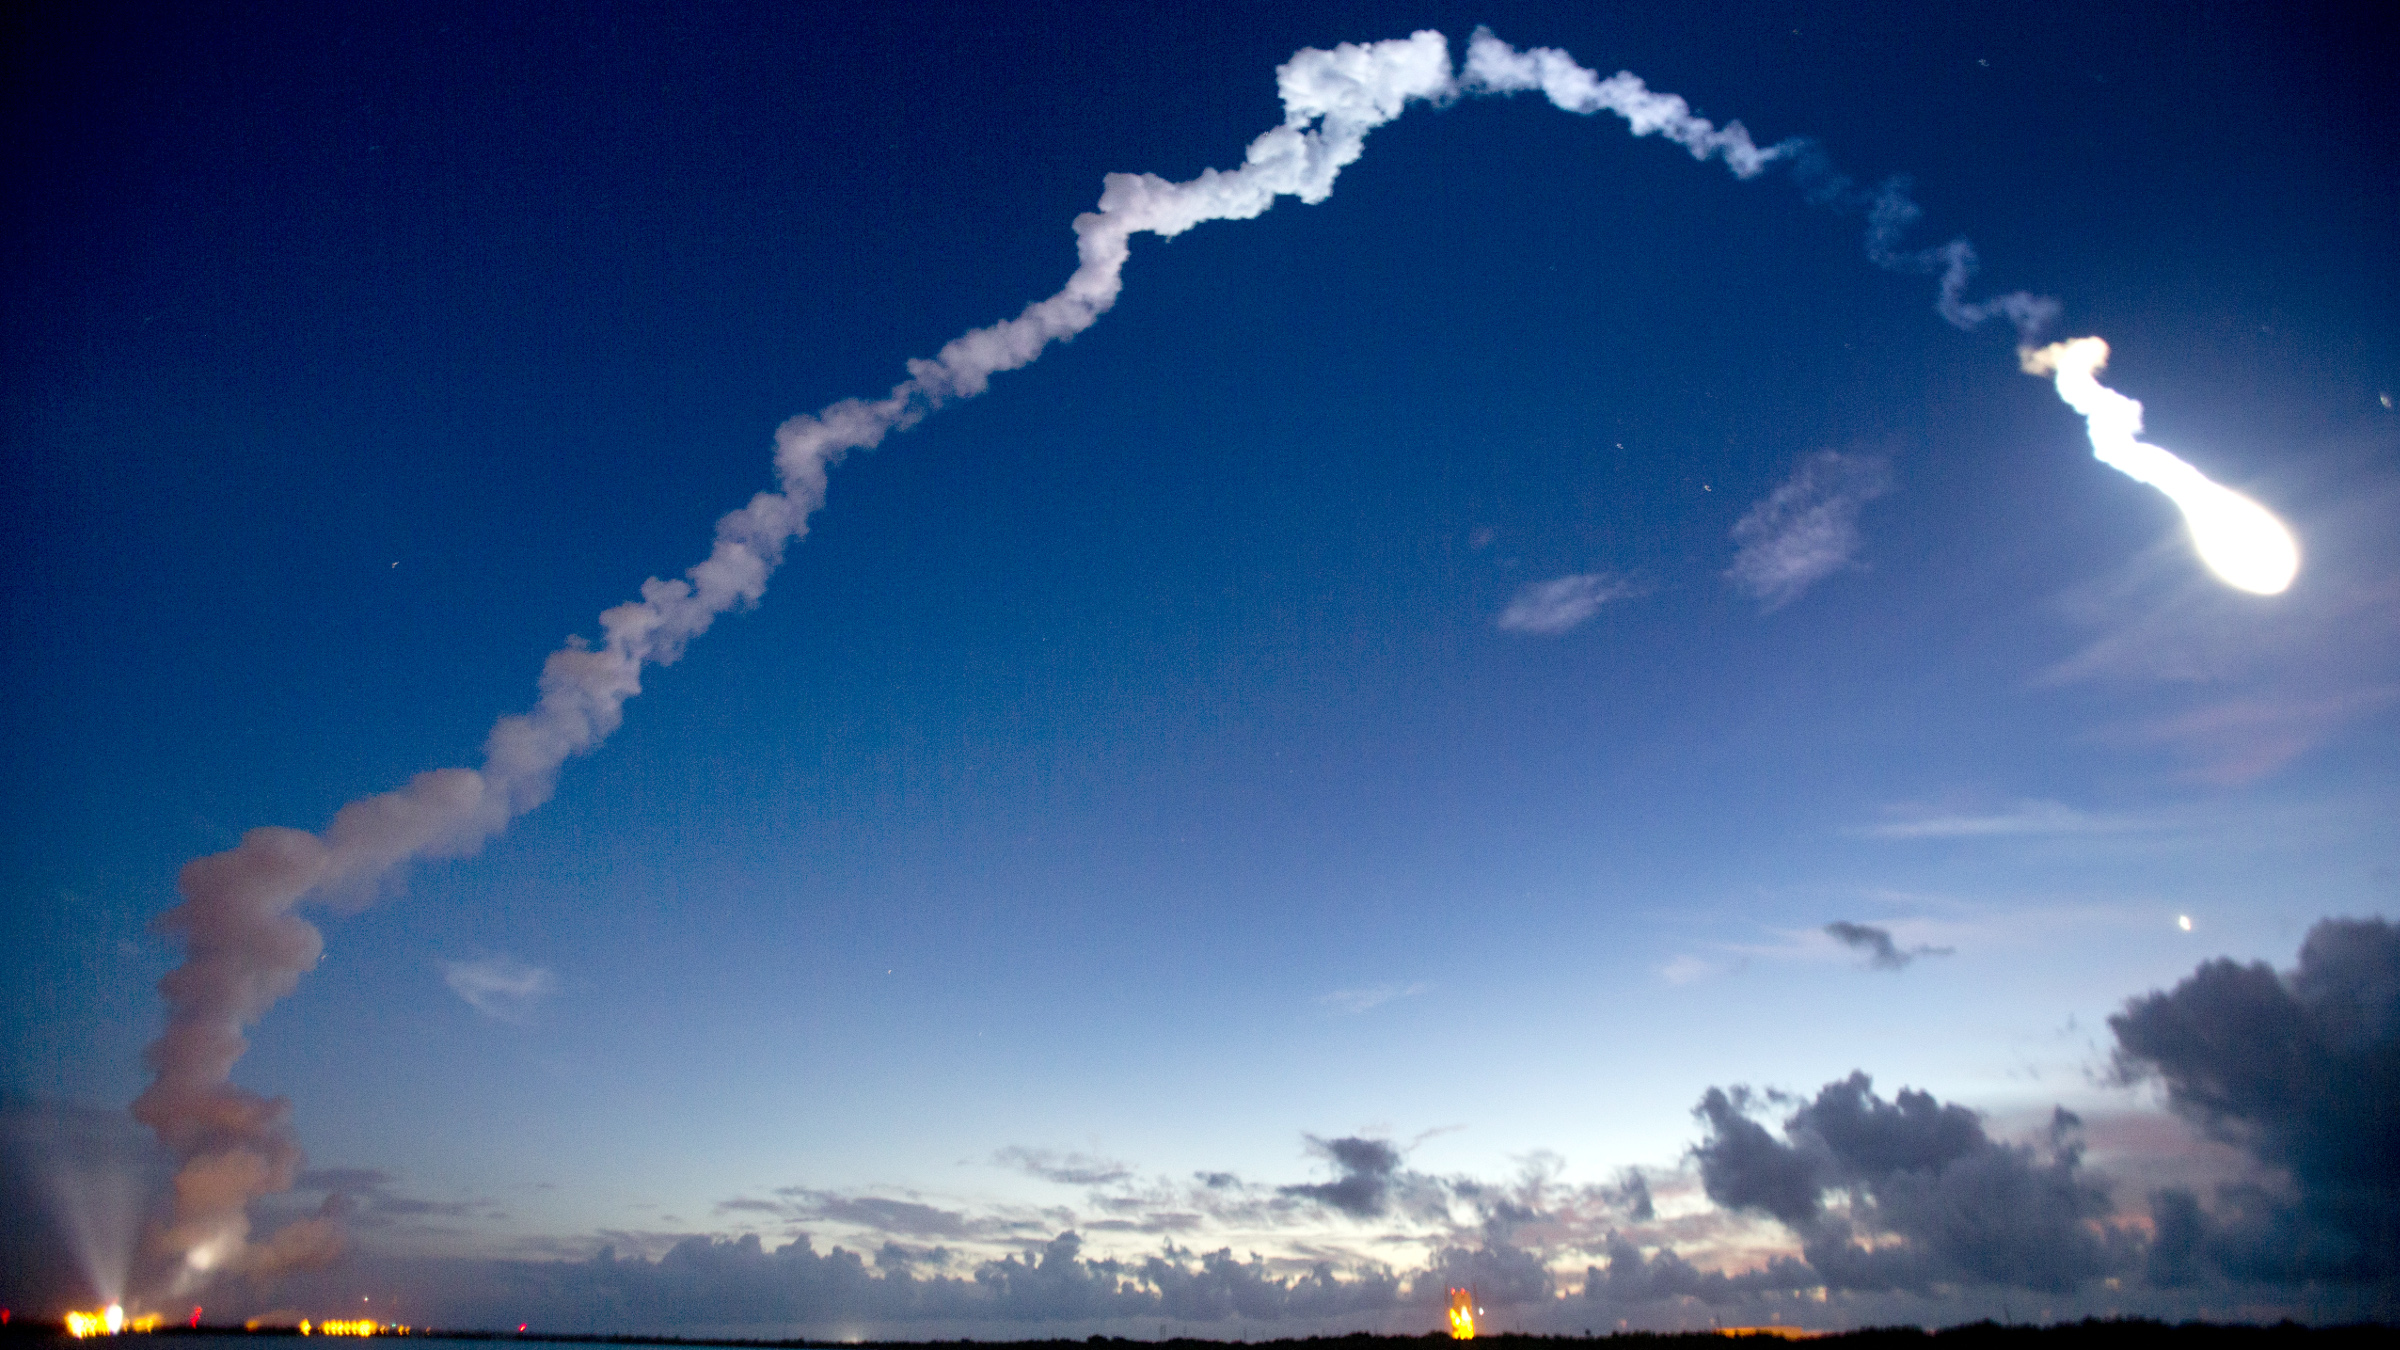 A United Launch Alliance Atlas V rocket lifts off from Complex 41 at the Cape Canaveral Air Force Station, Wednesday, Sept. 2, 2015, in Cape Canaveral, Fla. The rocket will deploy the fourth Mobile User Objective System (MUOS) satellite for the U.S. Navy to significantly improve ground communications for U.S. forces on the move.